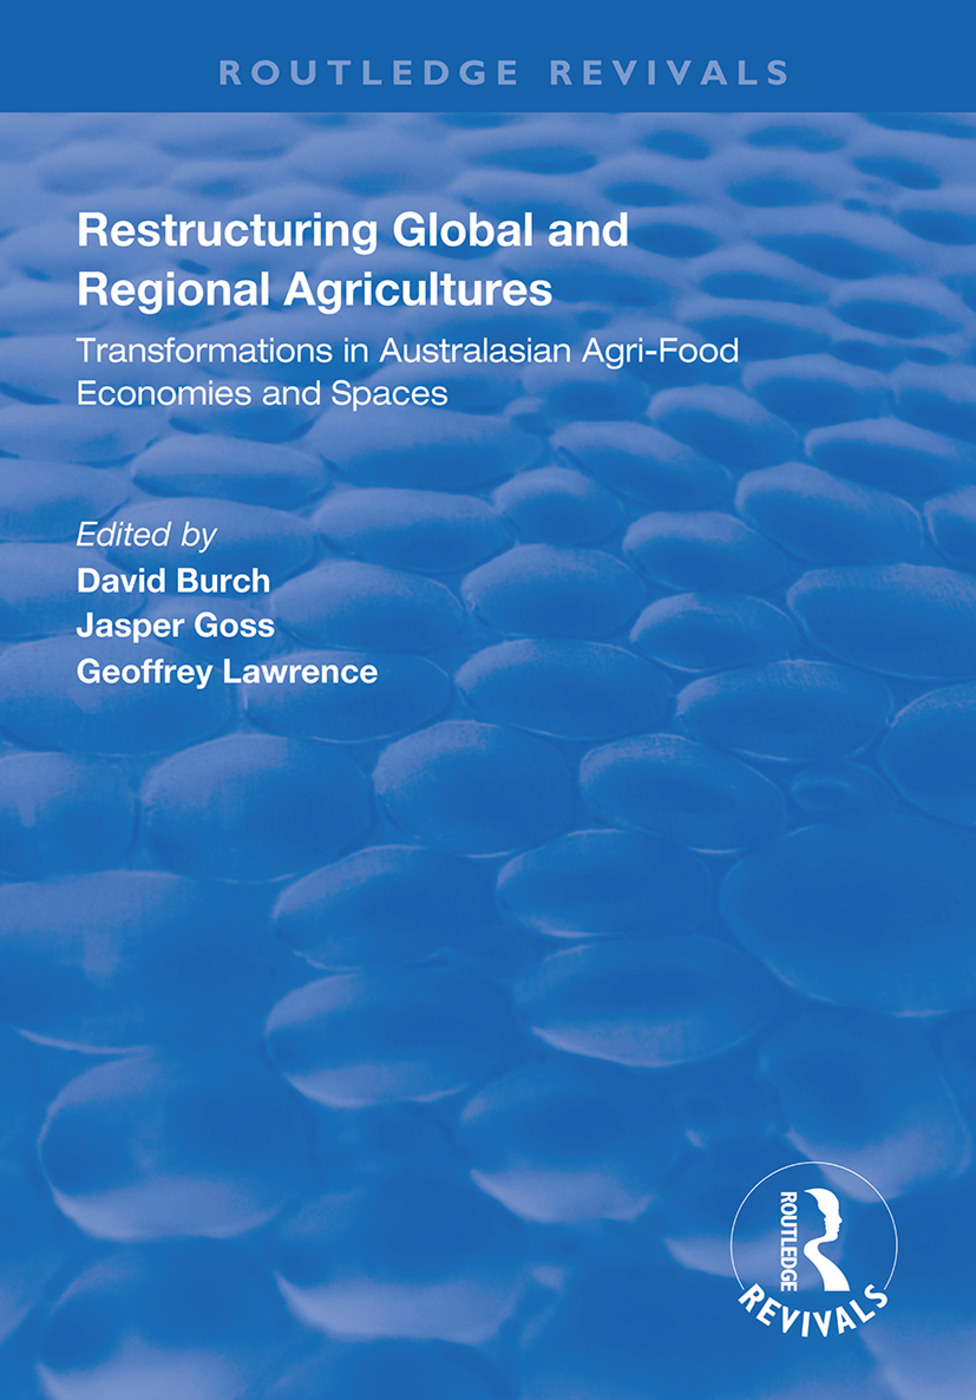 Restructuring Global and Regional Agricultures